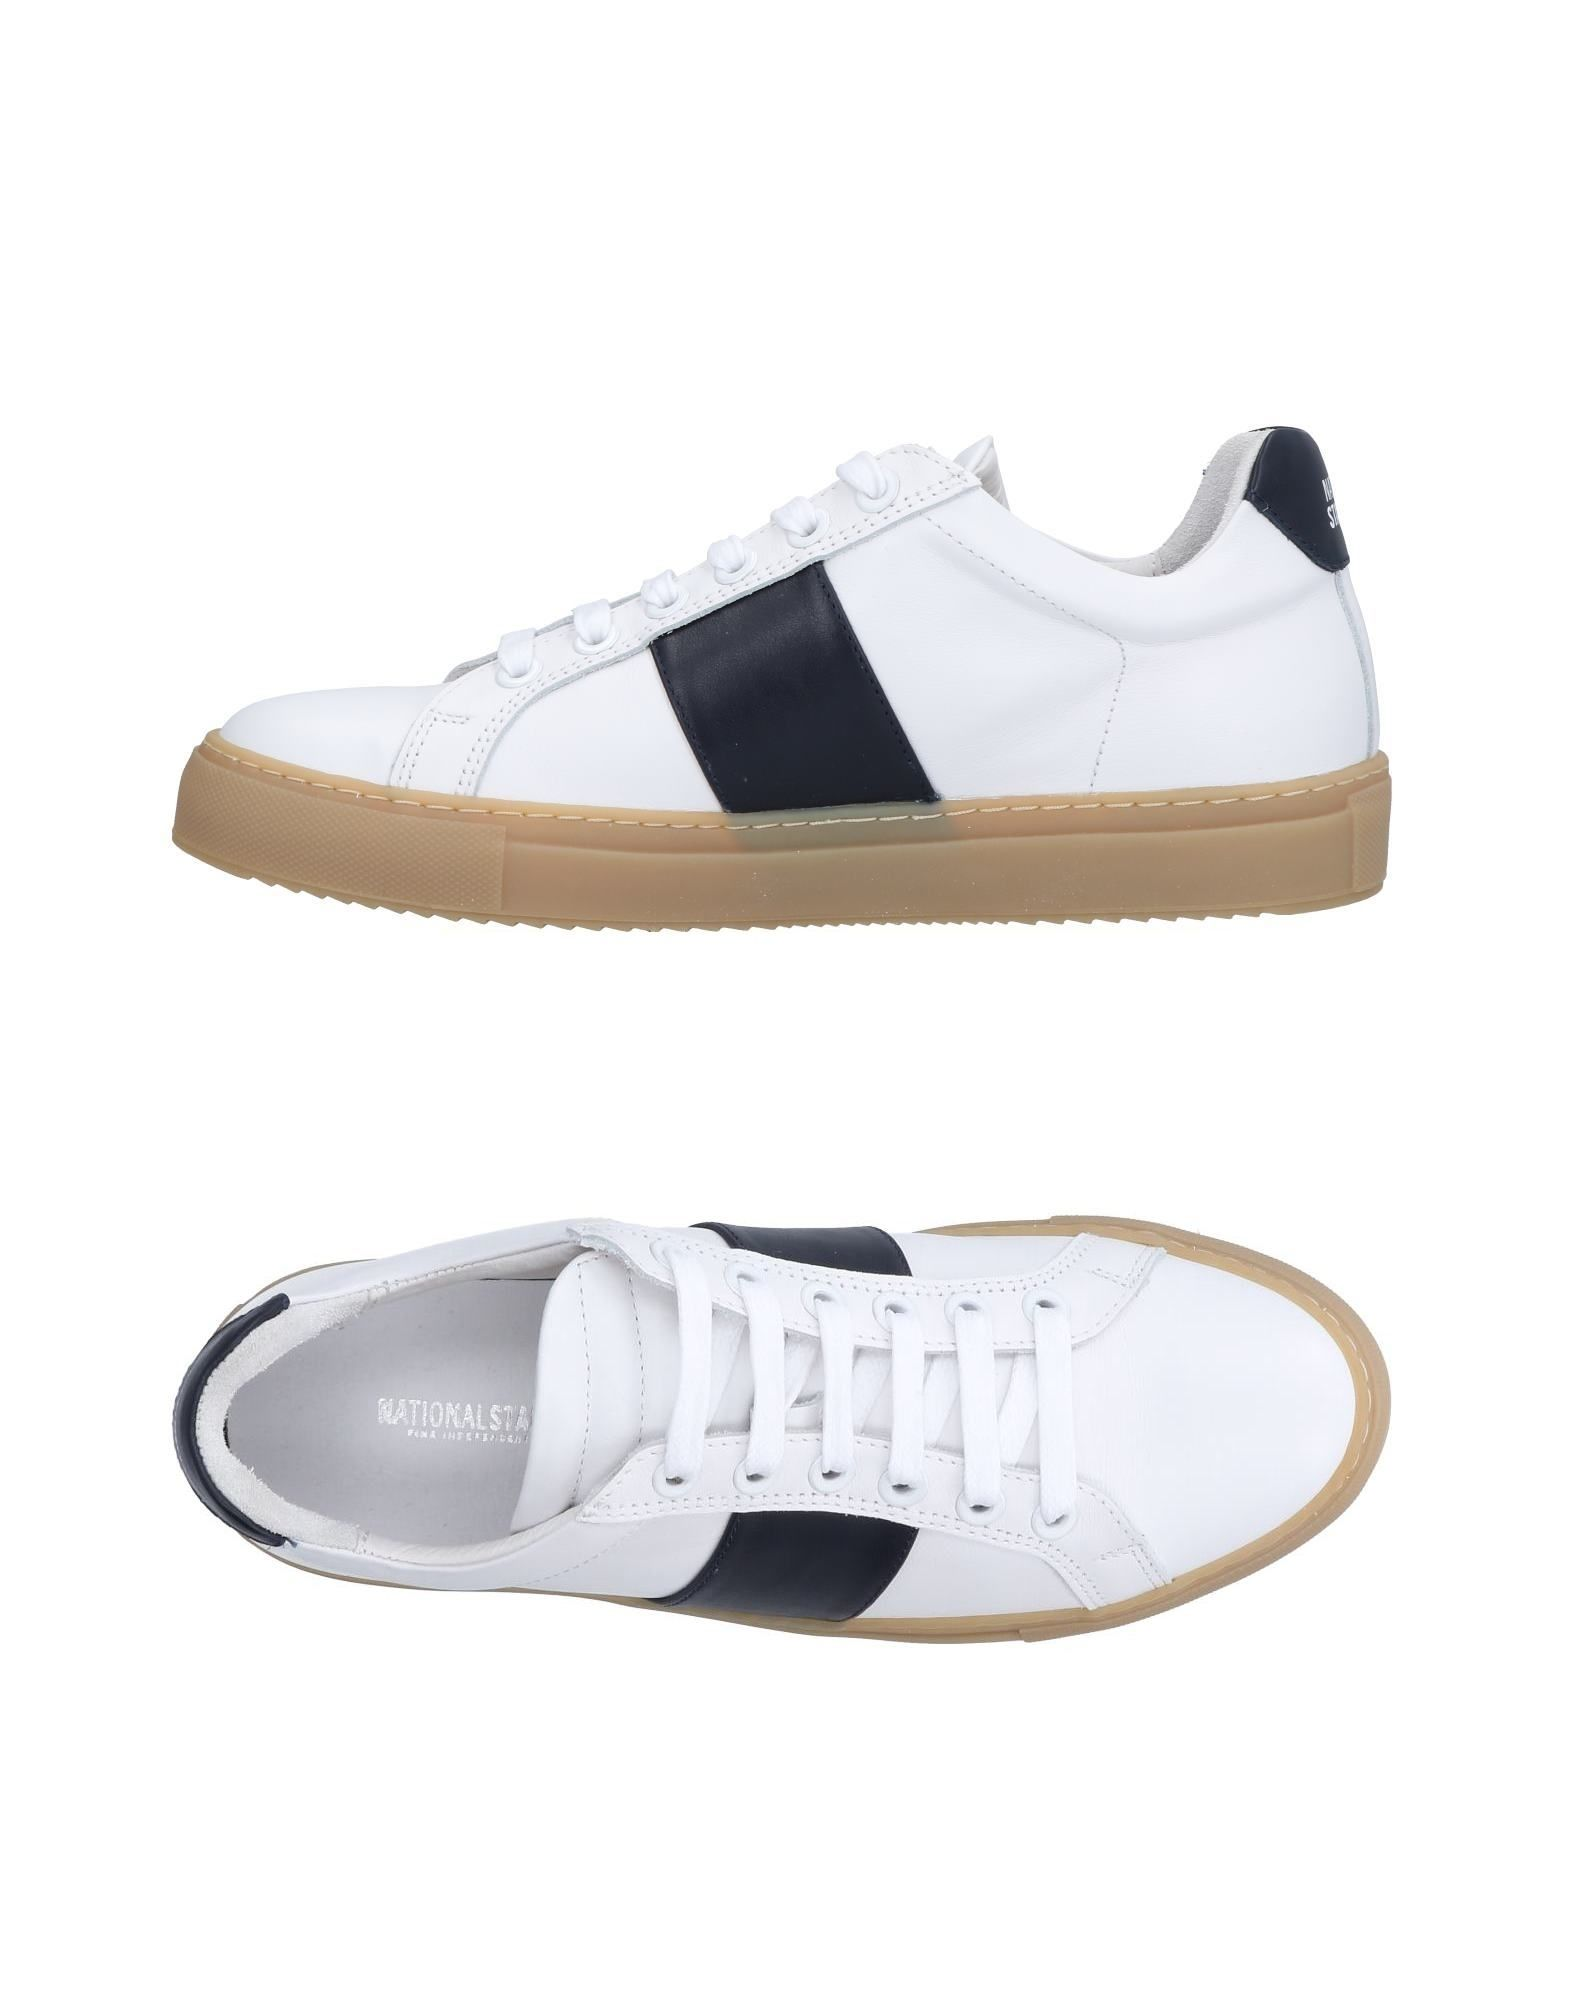 Sneakers National Standard Homme - Sneakers National Standard  Blanc Remise de marque